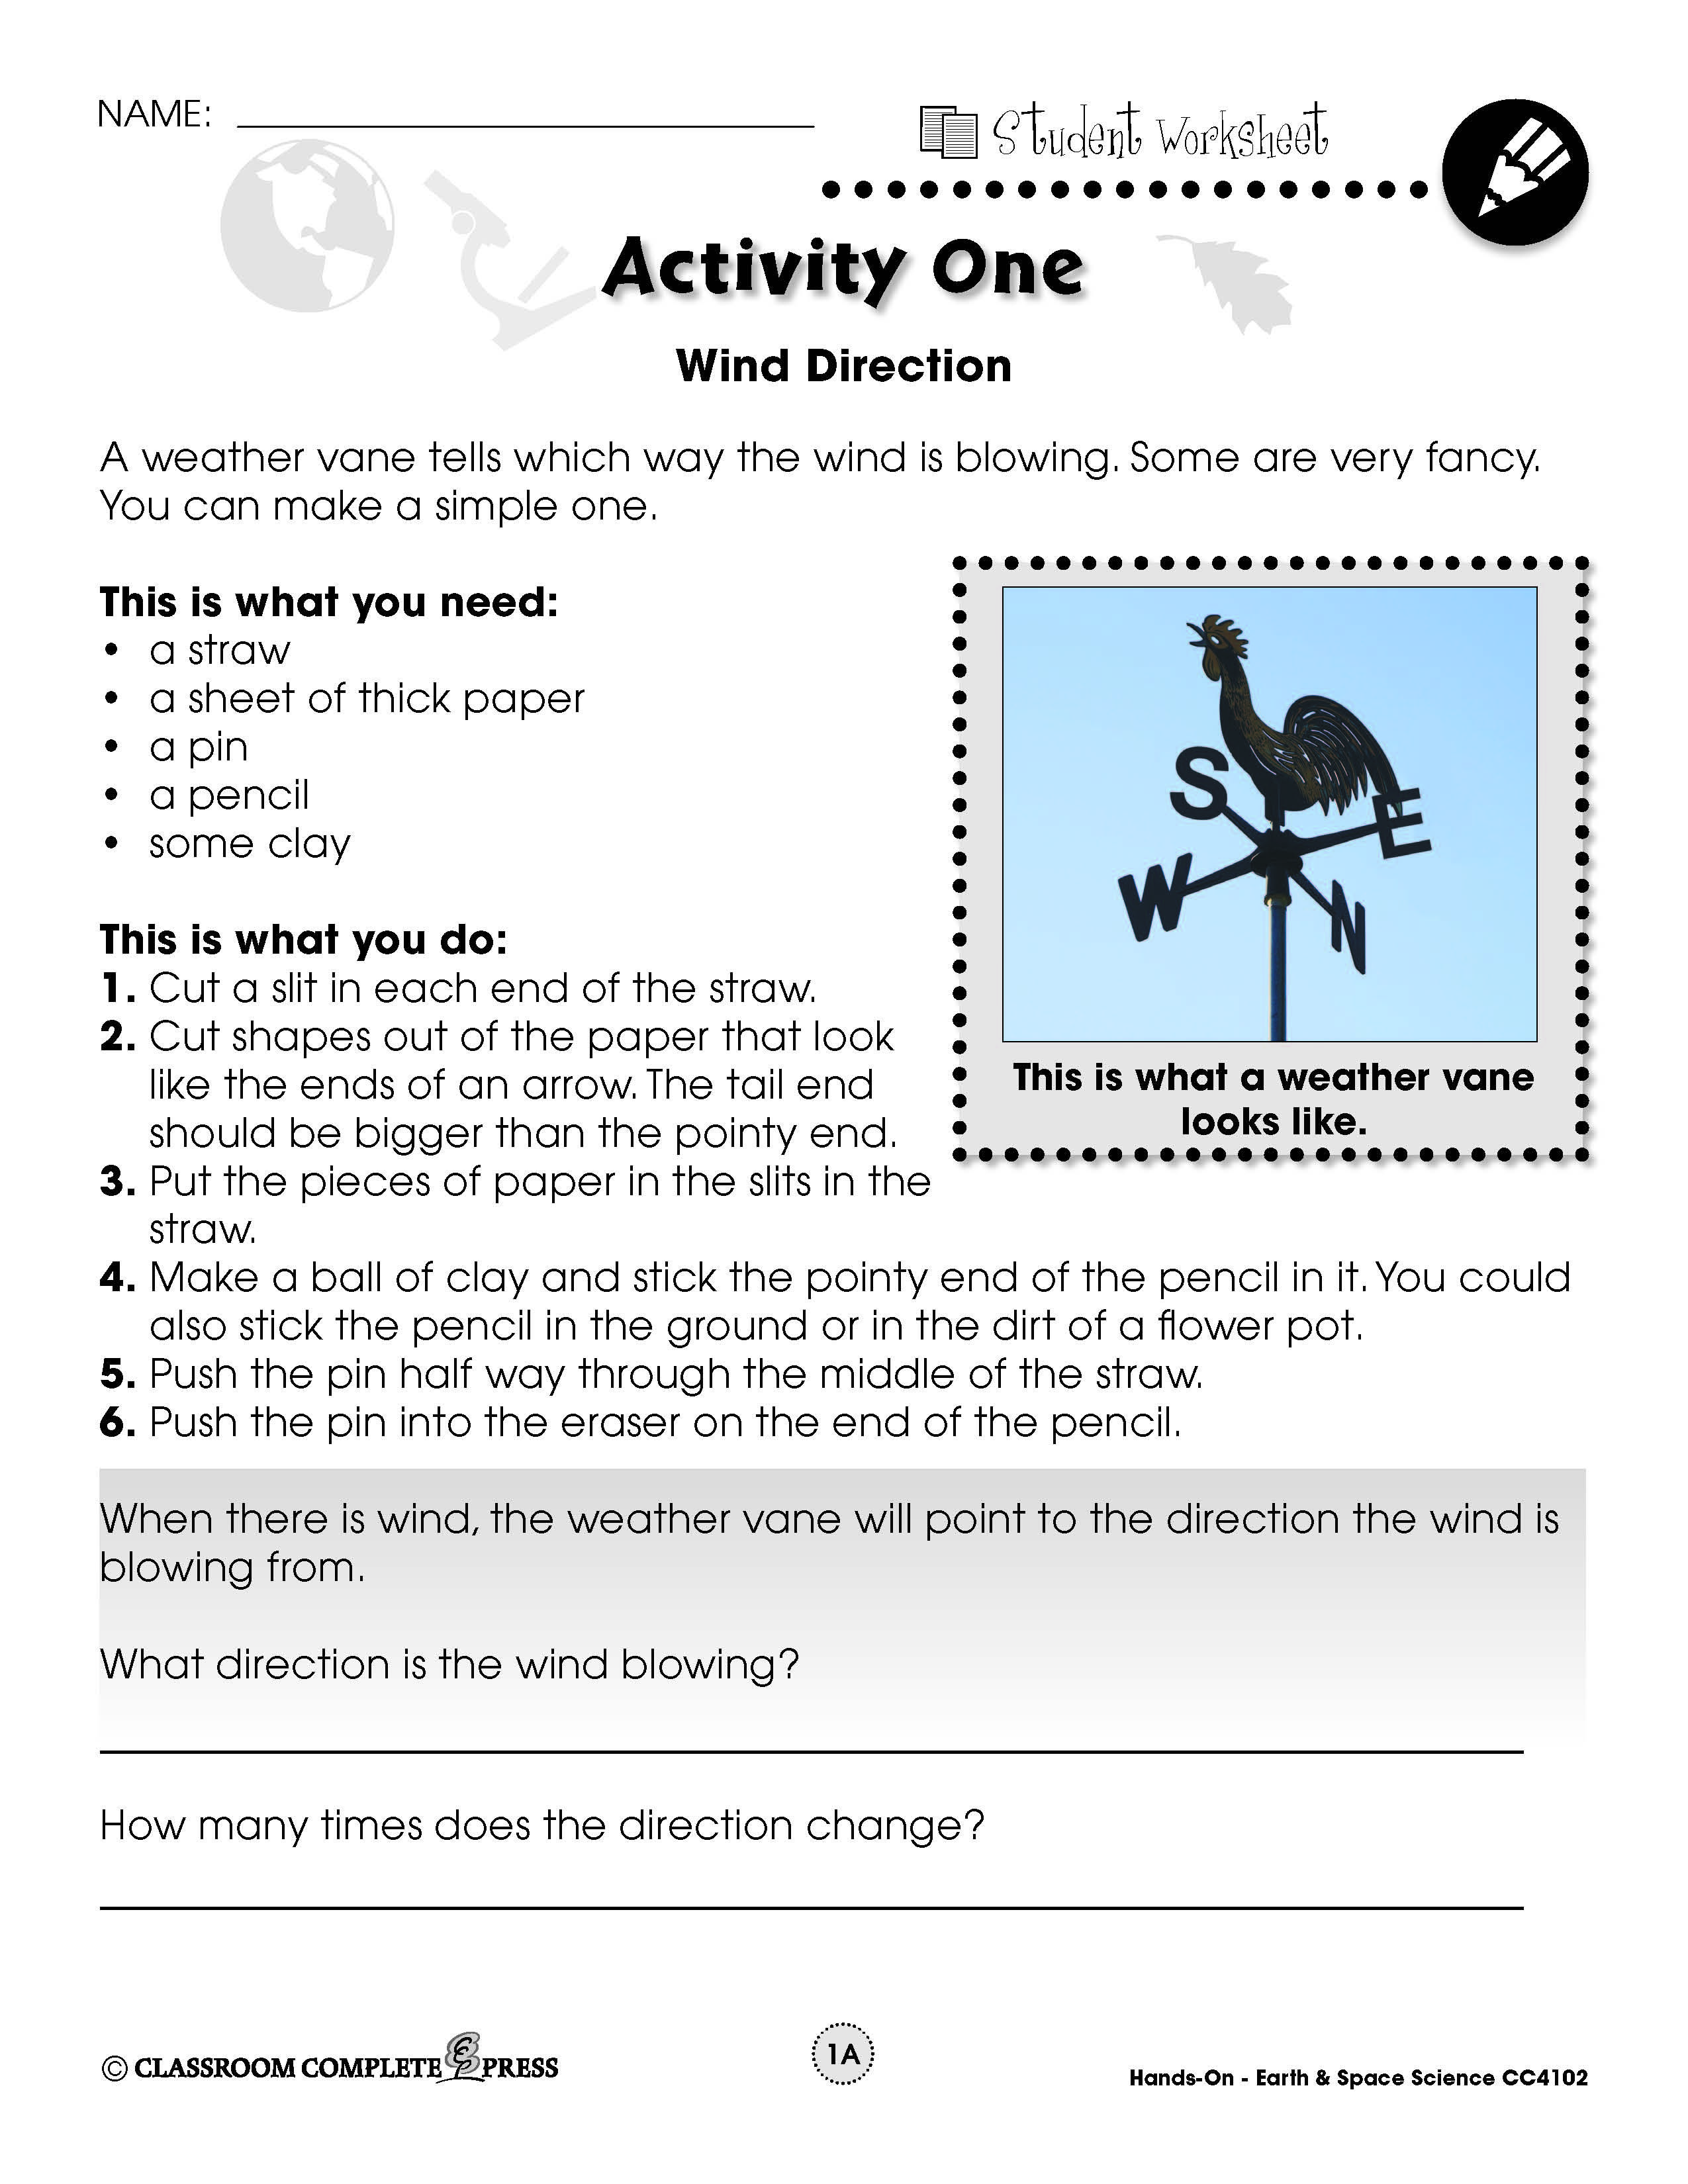 hight resolution of Fourth Grade Science Sound Worksheets   Printable Worksheets and Activities  for Teachers